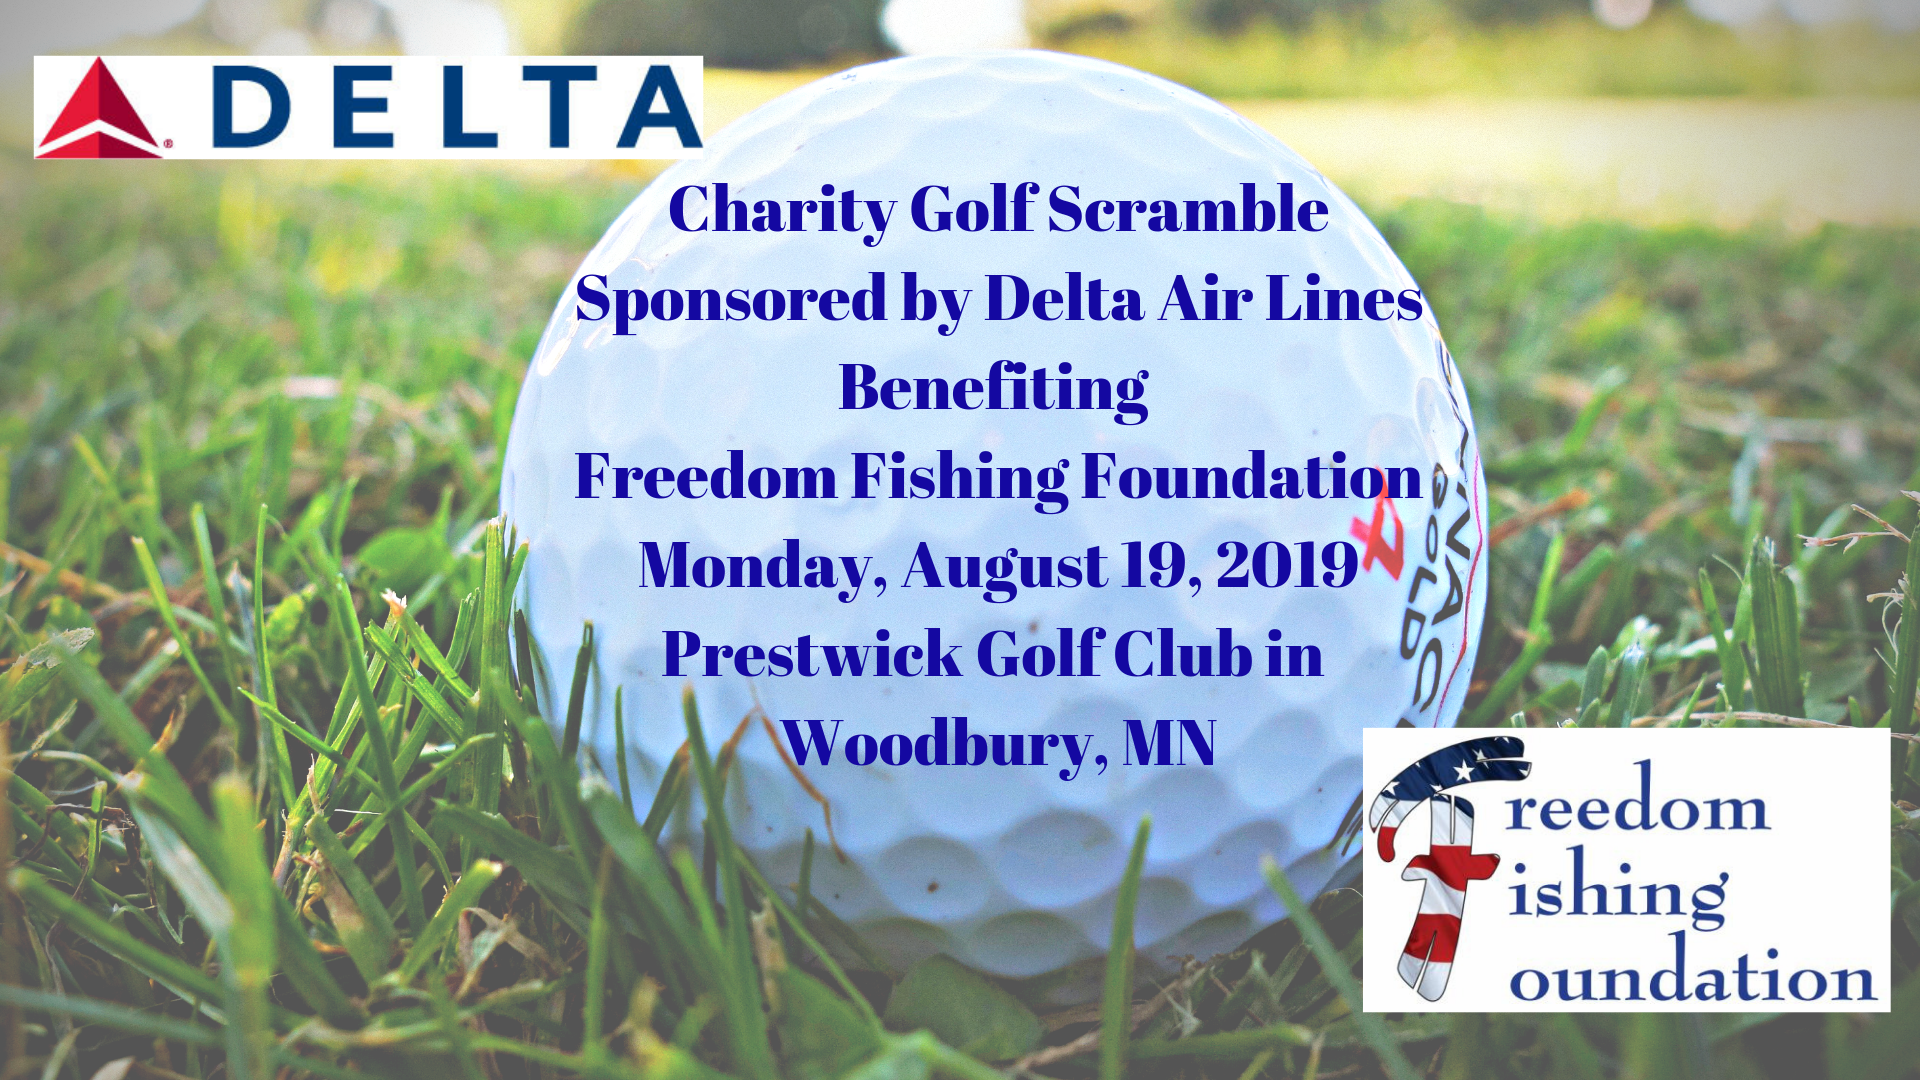 2019 Charity Golf Scramble Sponsored by Delta Air Lines